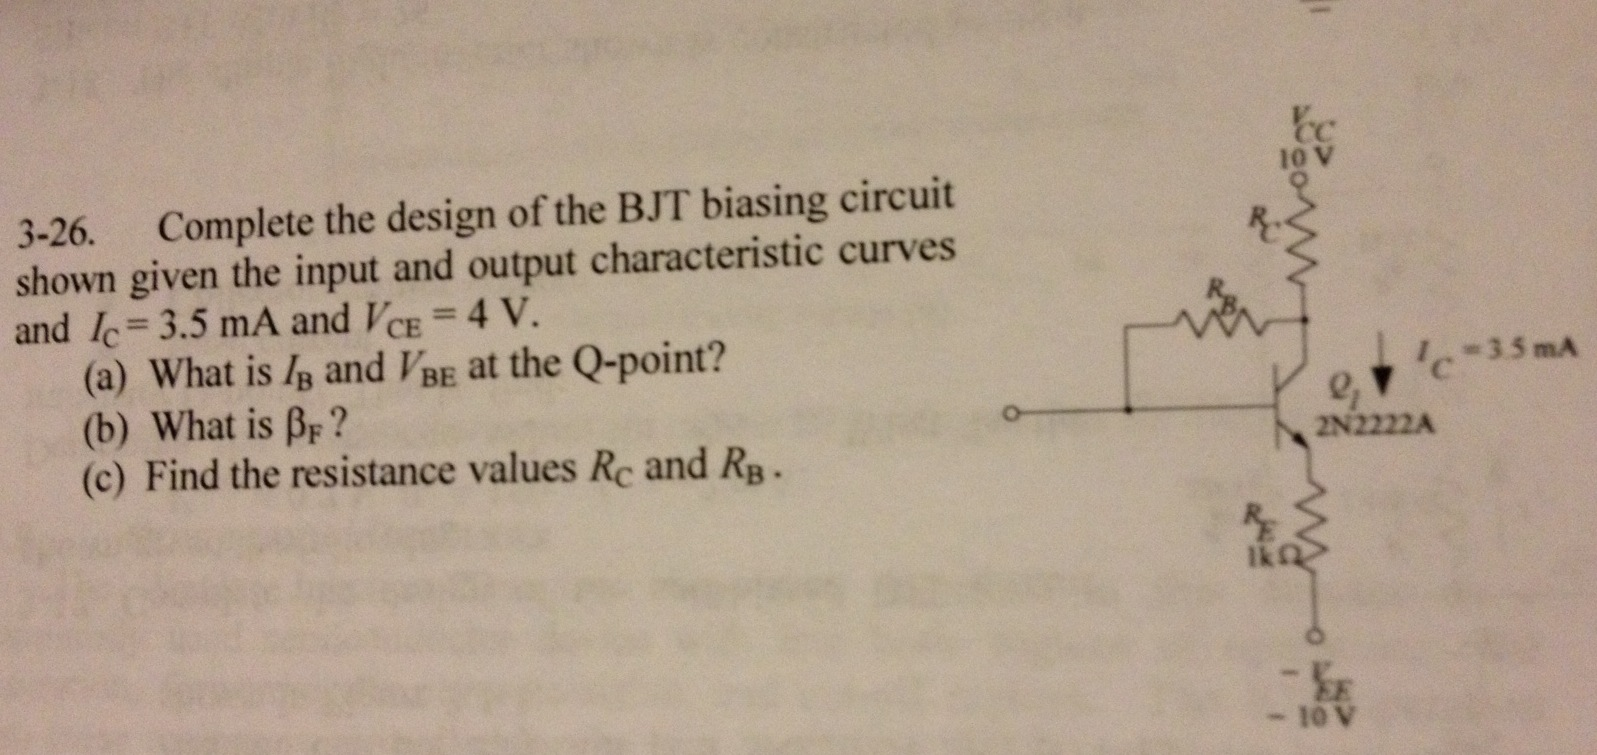 Complete the design of the BJT biasing circuit sho